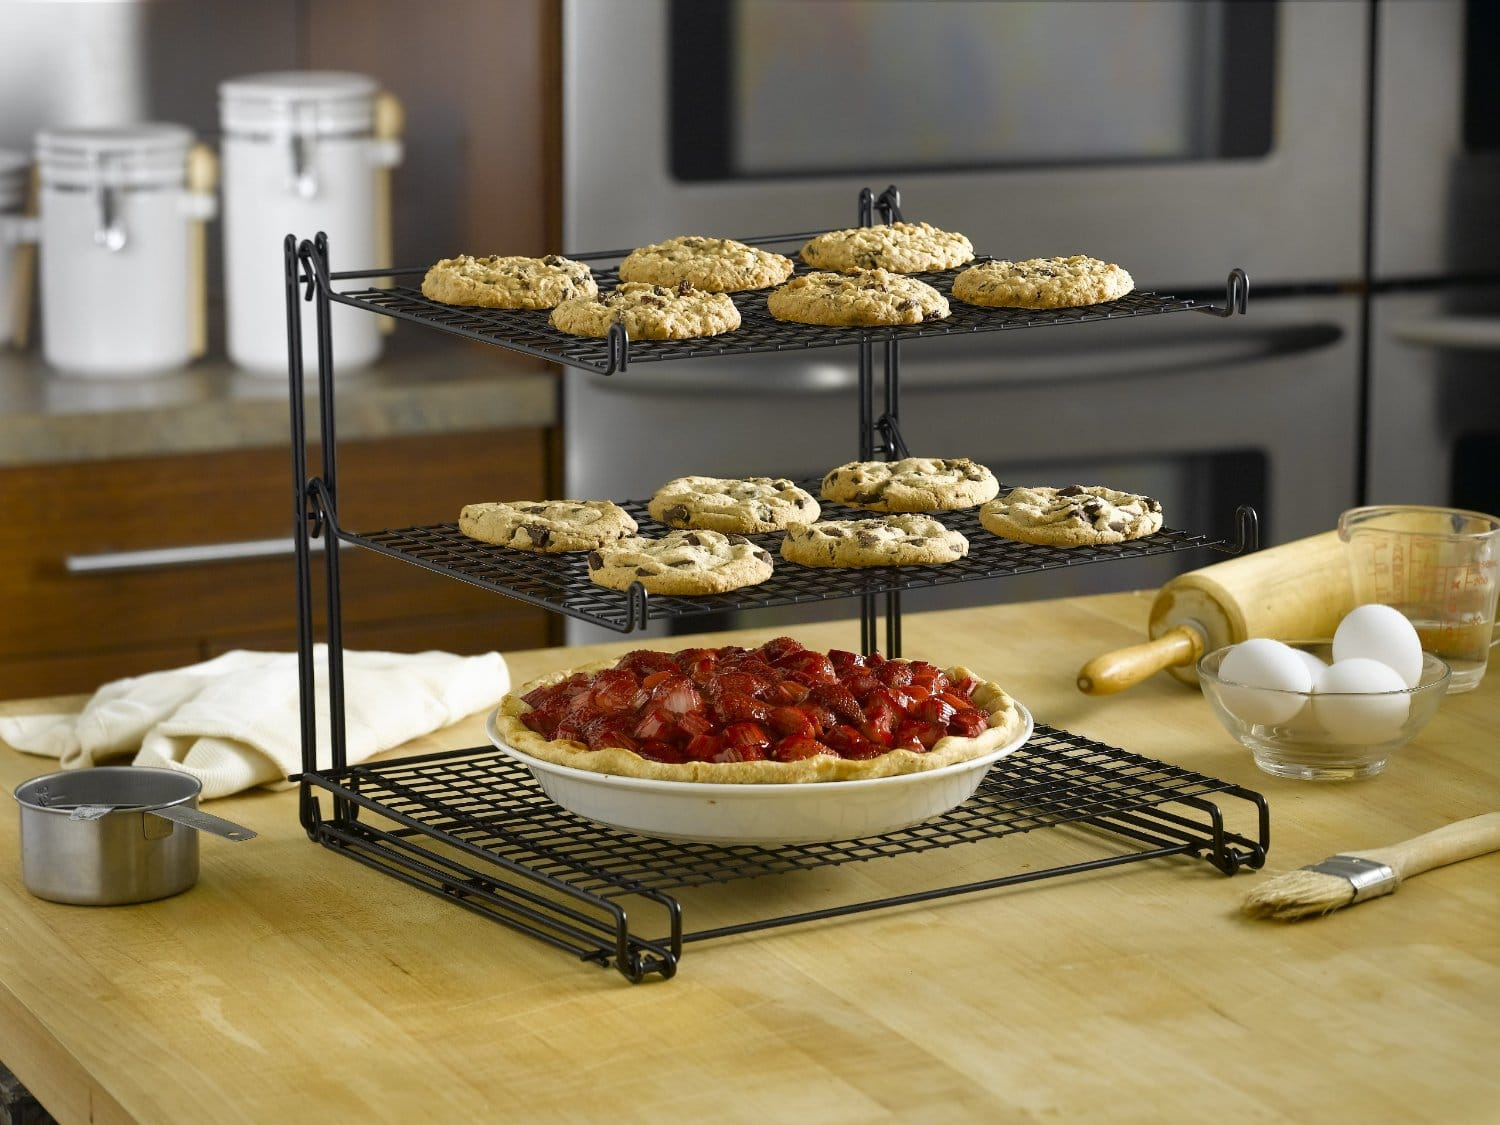 Top 10 Best Cooling Racks in 2020 Review